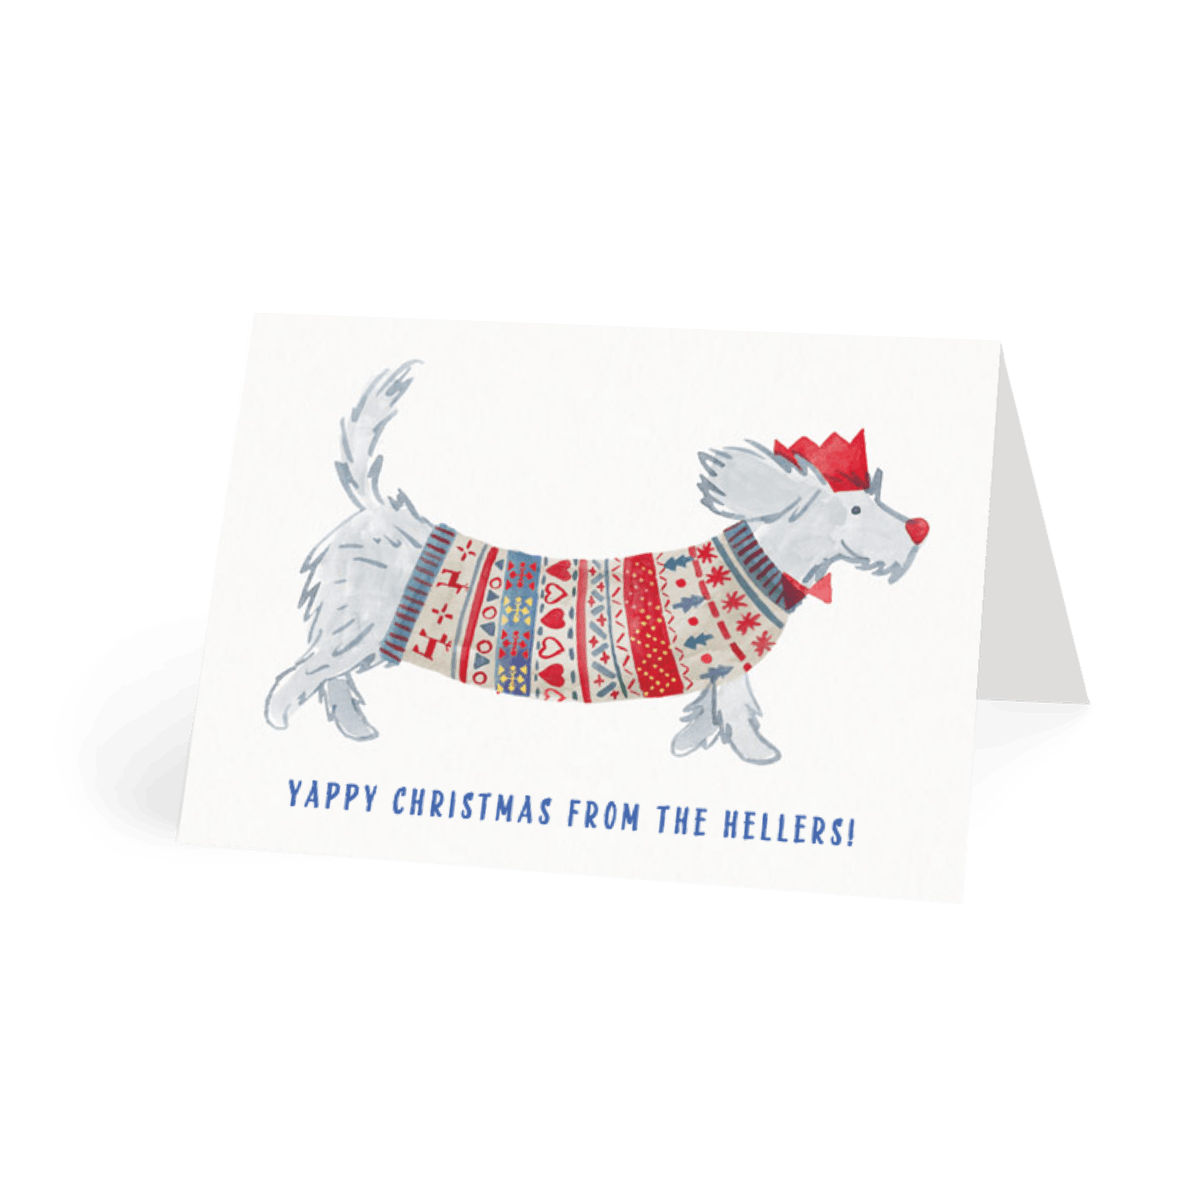 Https%3a%2f%2fwww.papier.com%2fproduct image%2f47122%2f14%2fchristmas dog 3019 front 1545054163.png?ixlib=rb 1.1